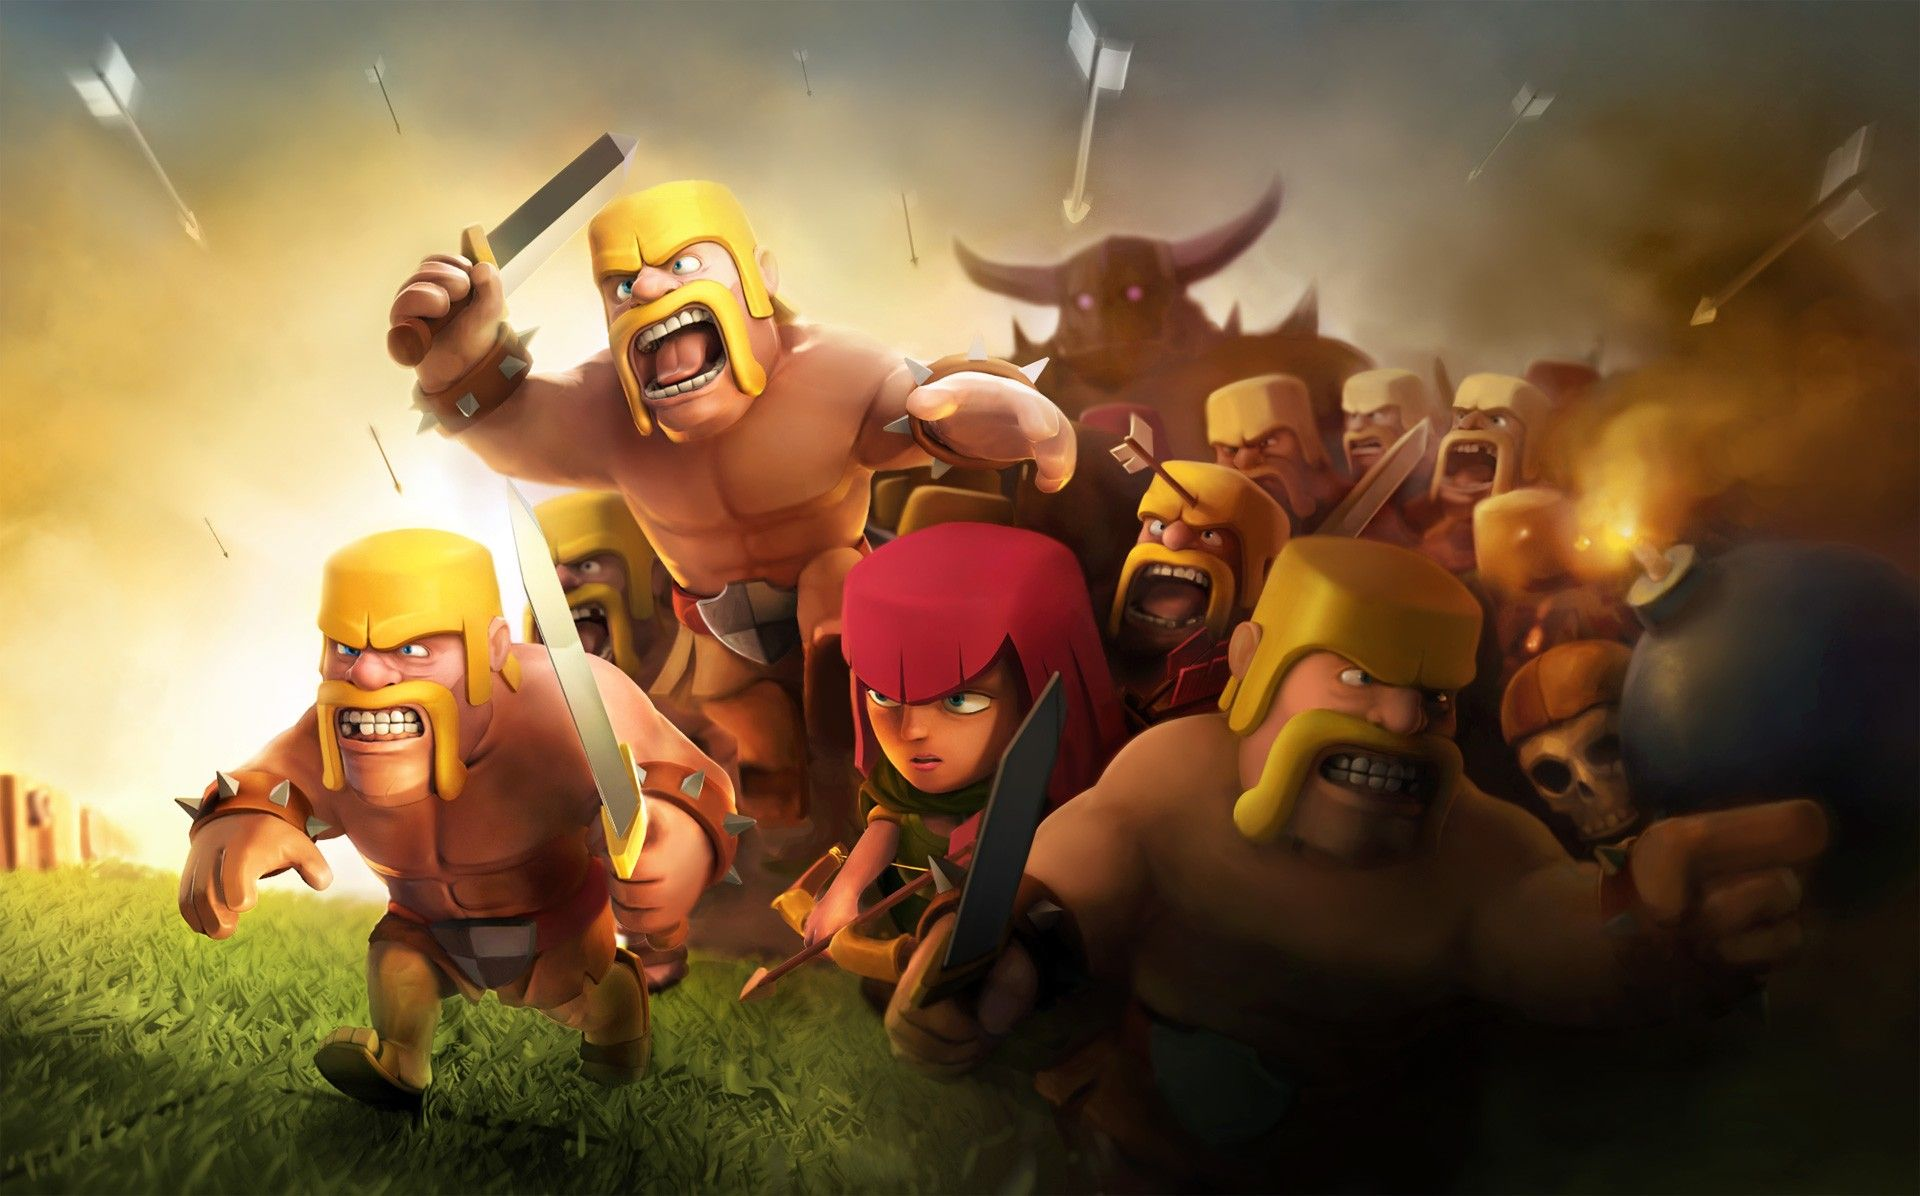 Clash Of Clans Wallpapers High Quality | Download Free